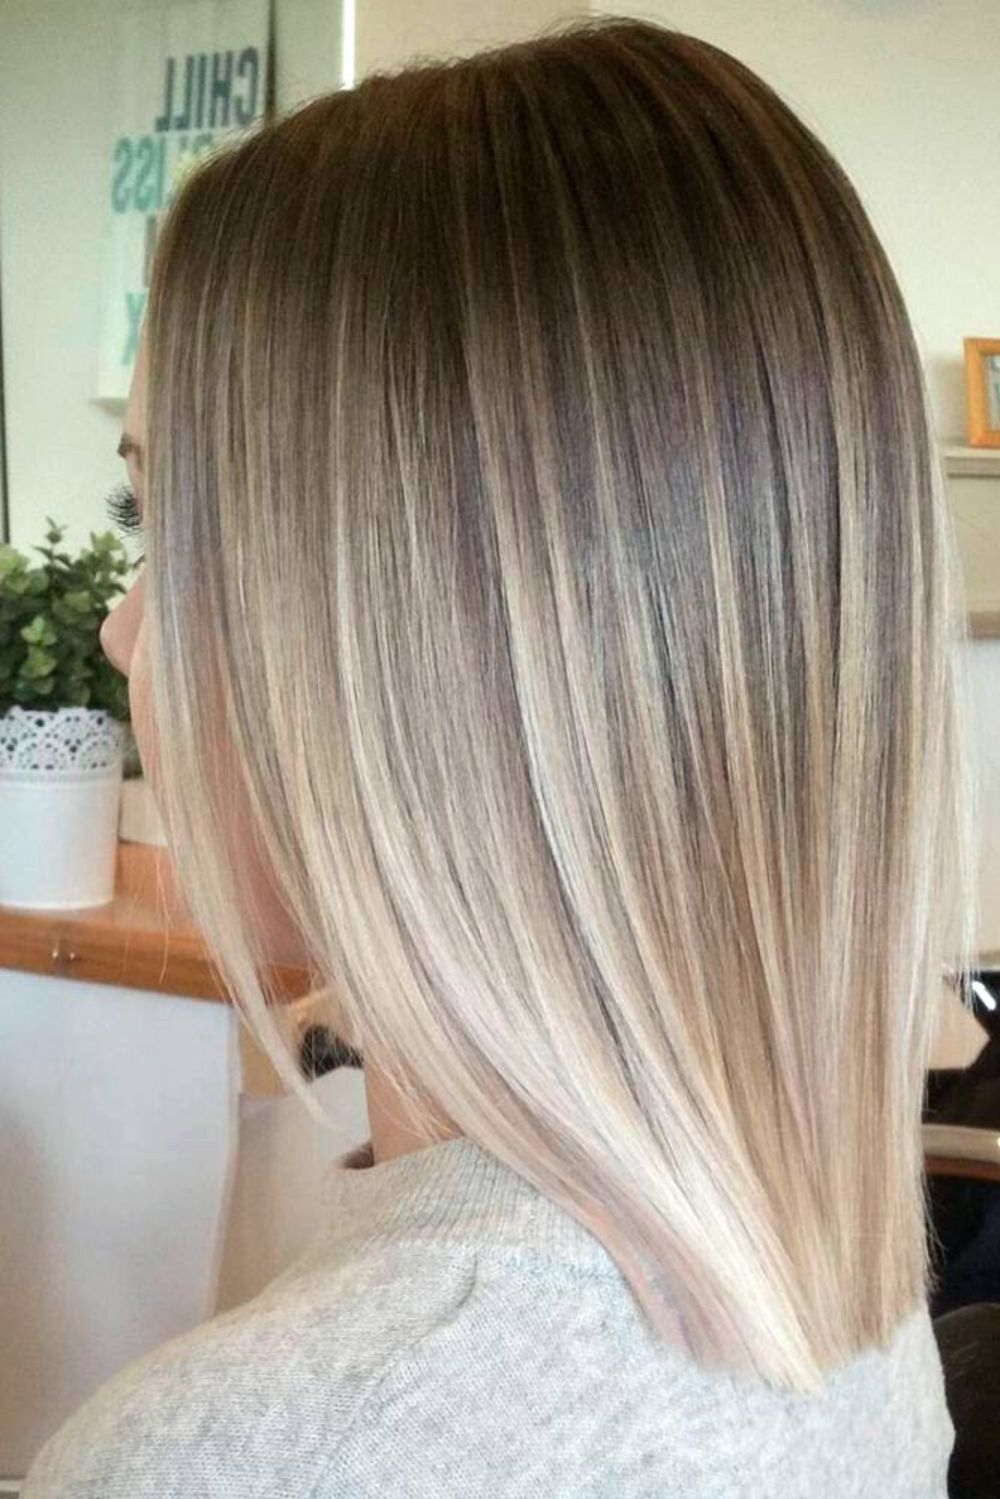 Pretty blonde hair color ideas (18) - Fashionetter | Hair Ideas ...